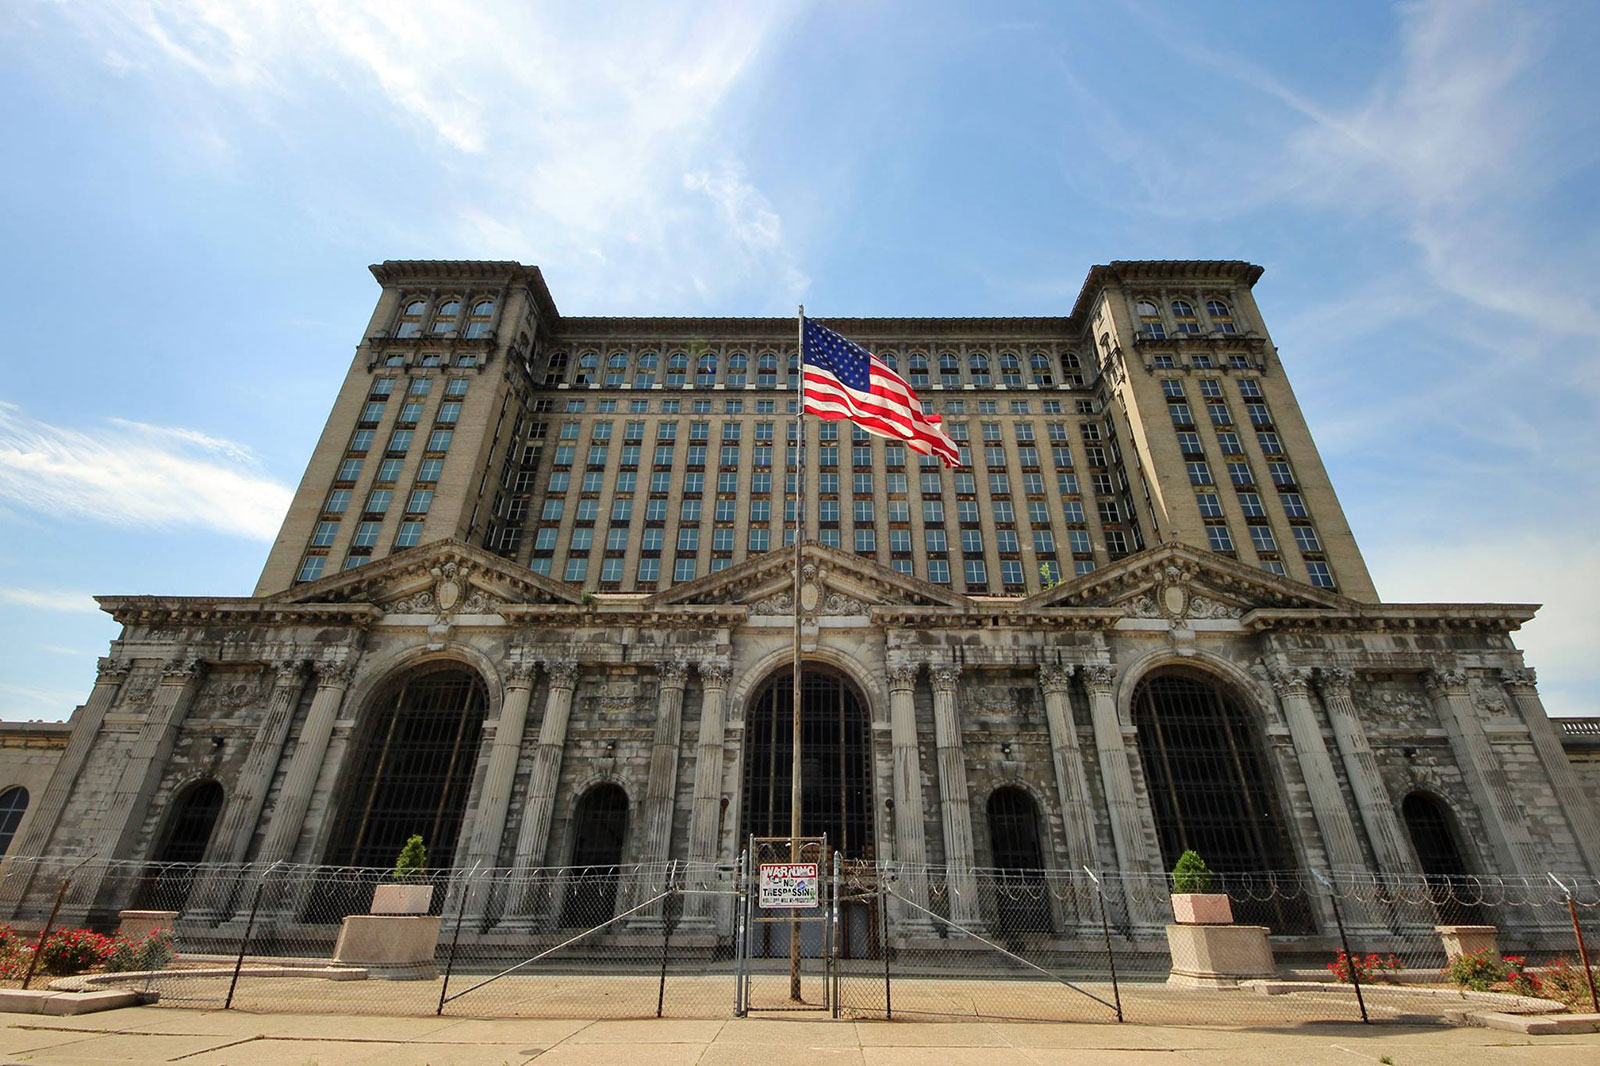 Detroit Central Station by Courtney Celley